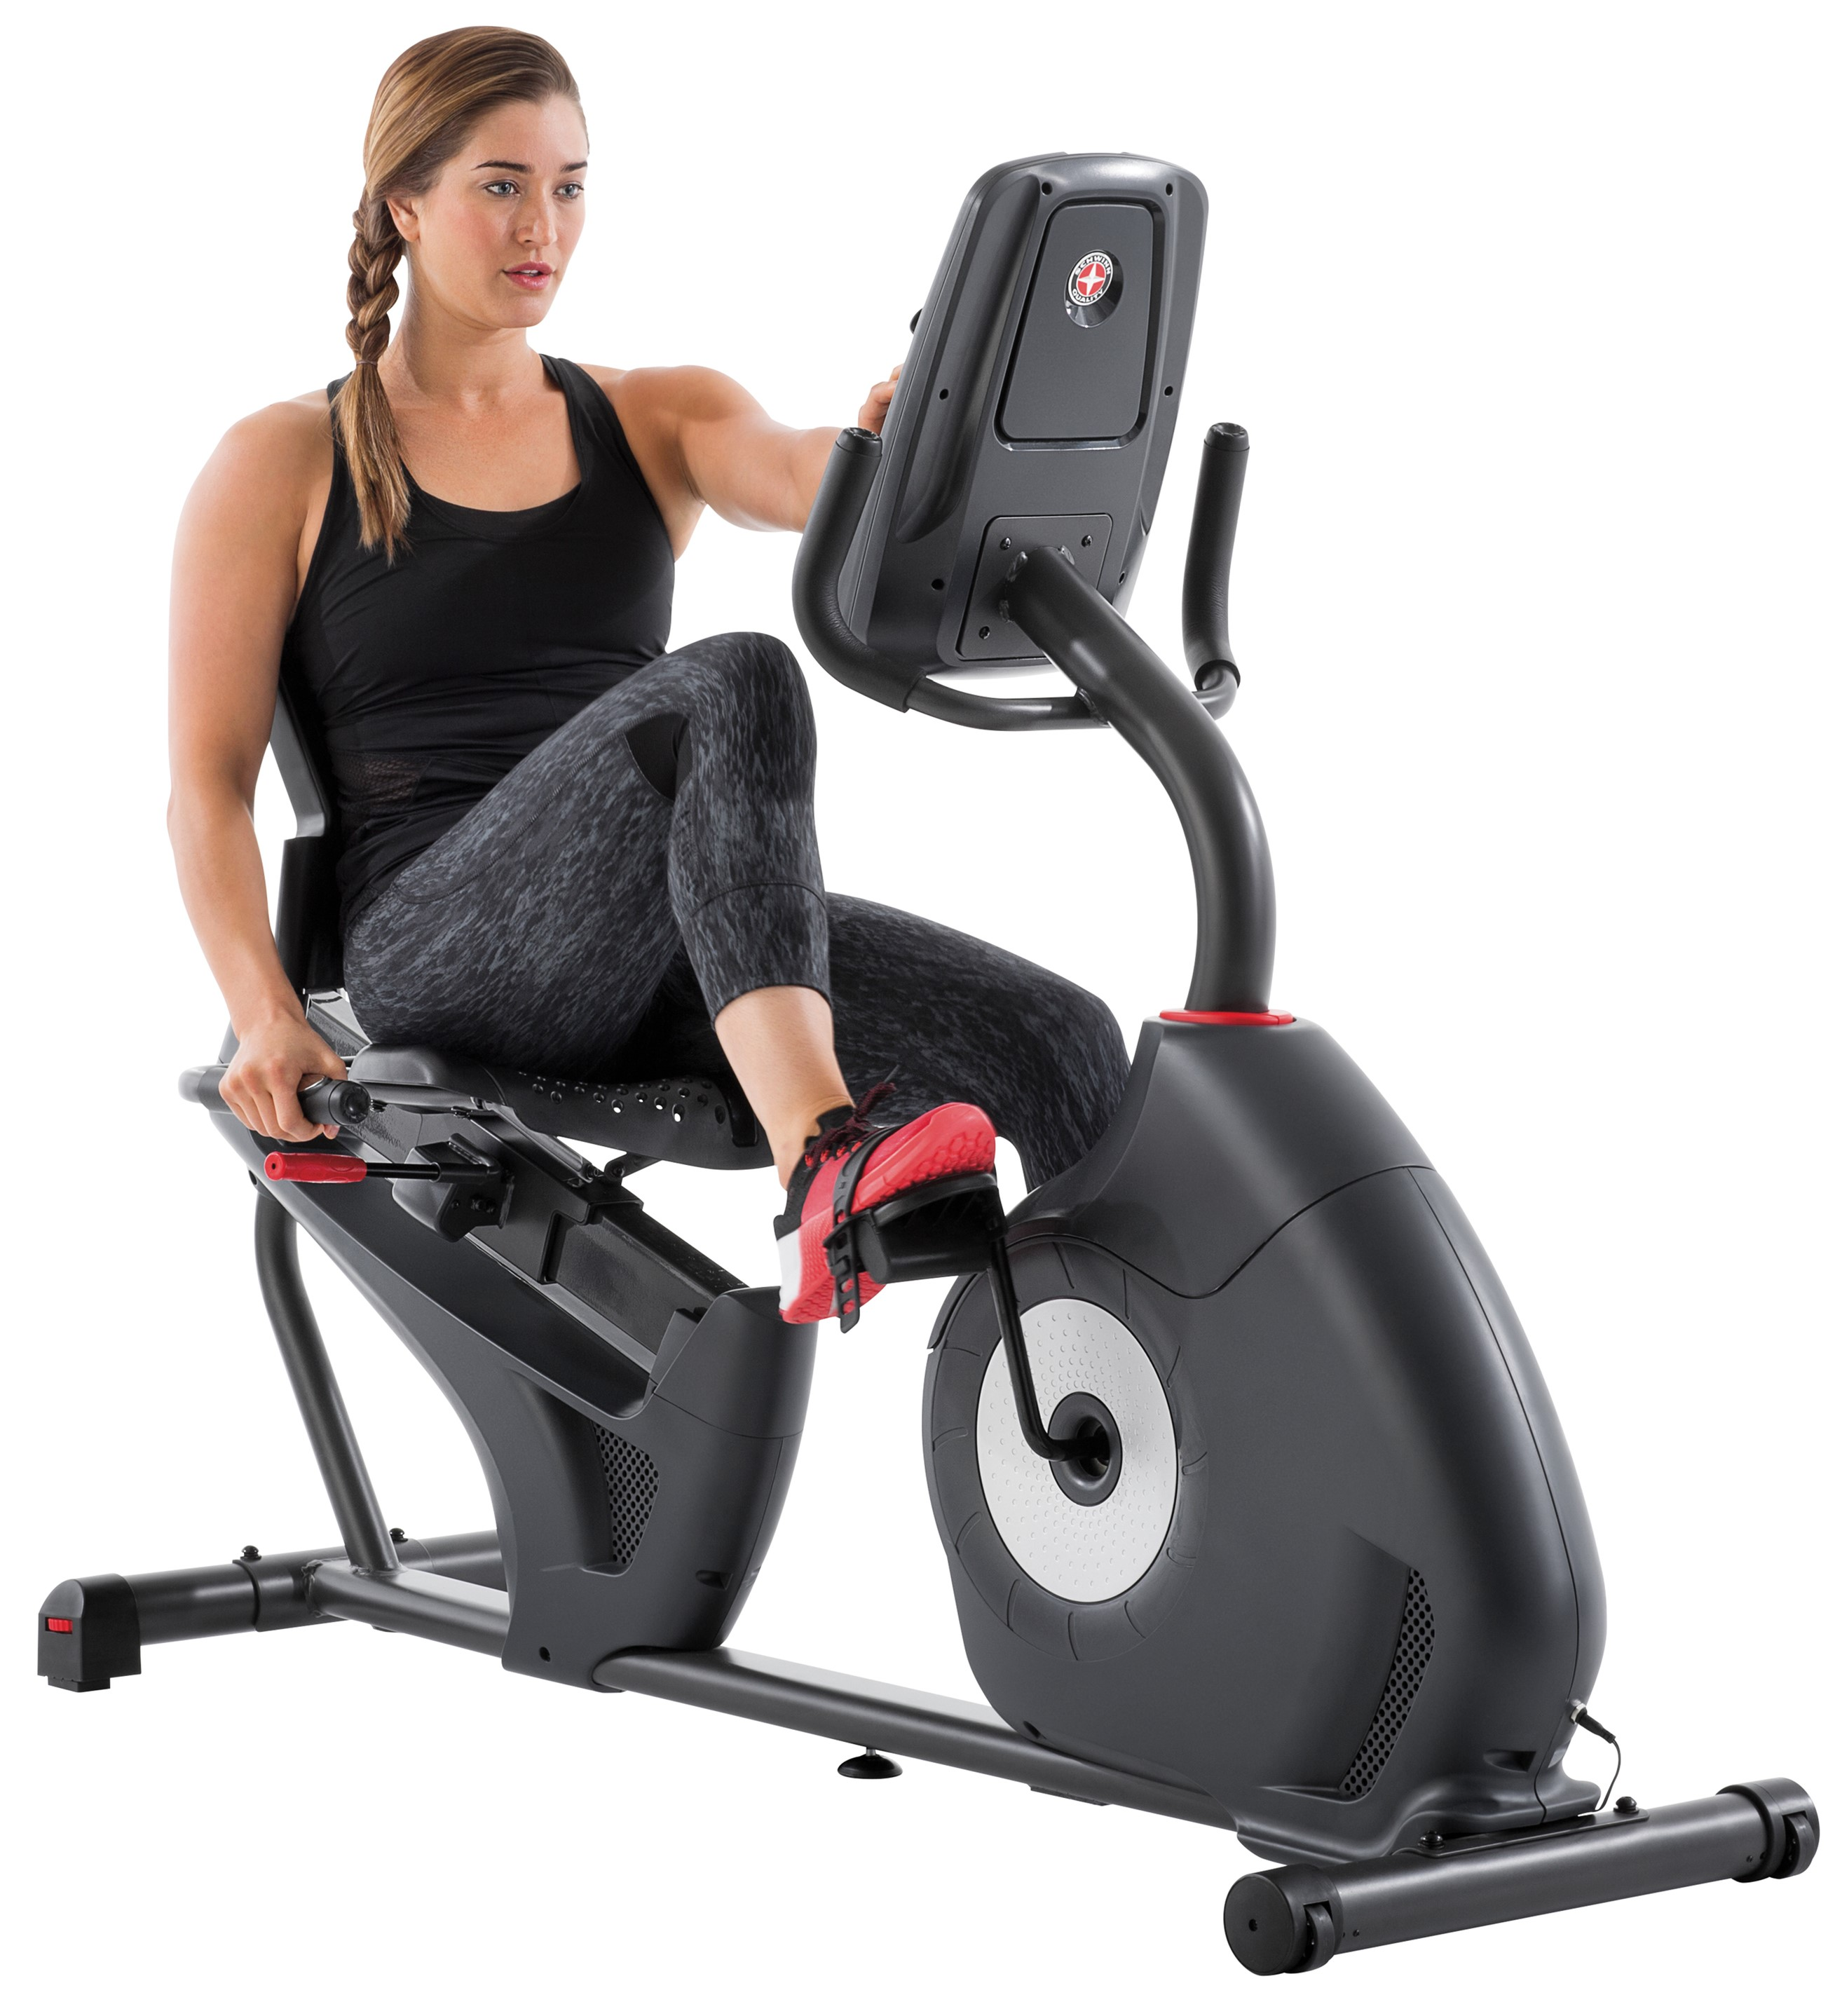 Schwinn 230 Heart Rate Enabled Recumbent Bike with Goal Tracking & 22 Workout Programs